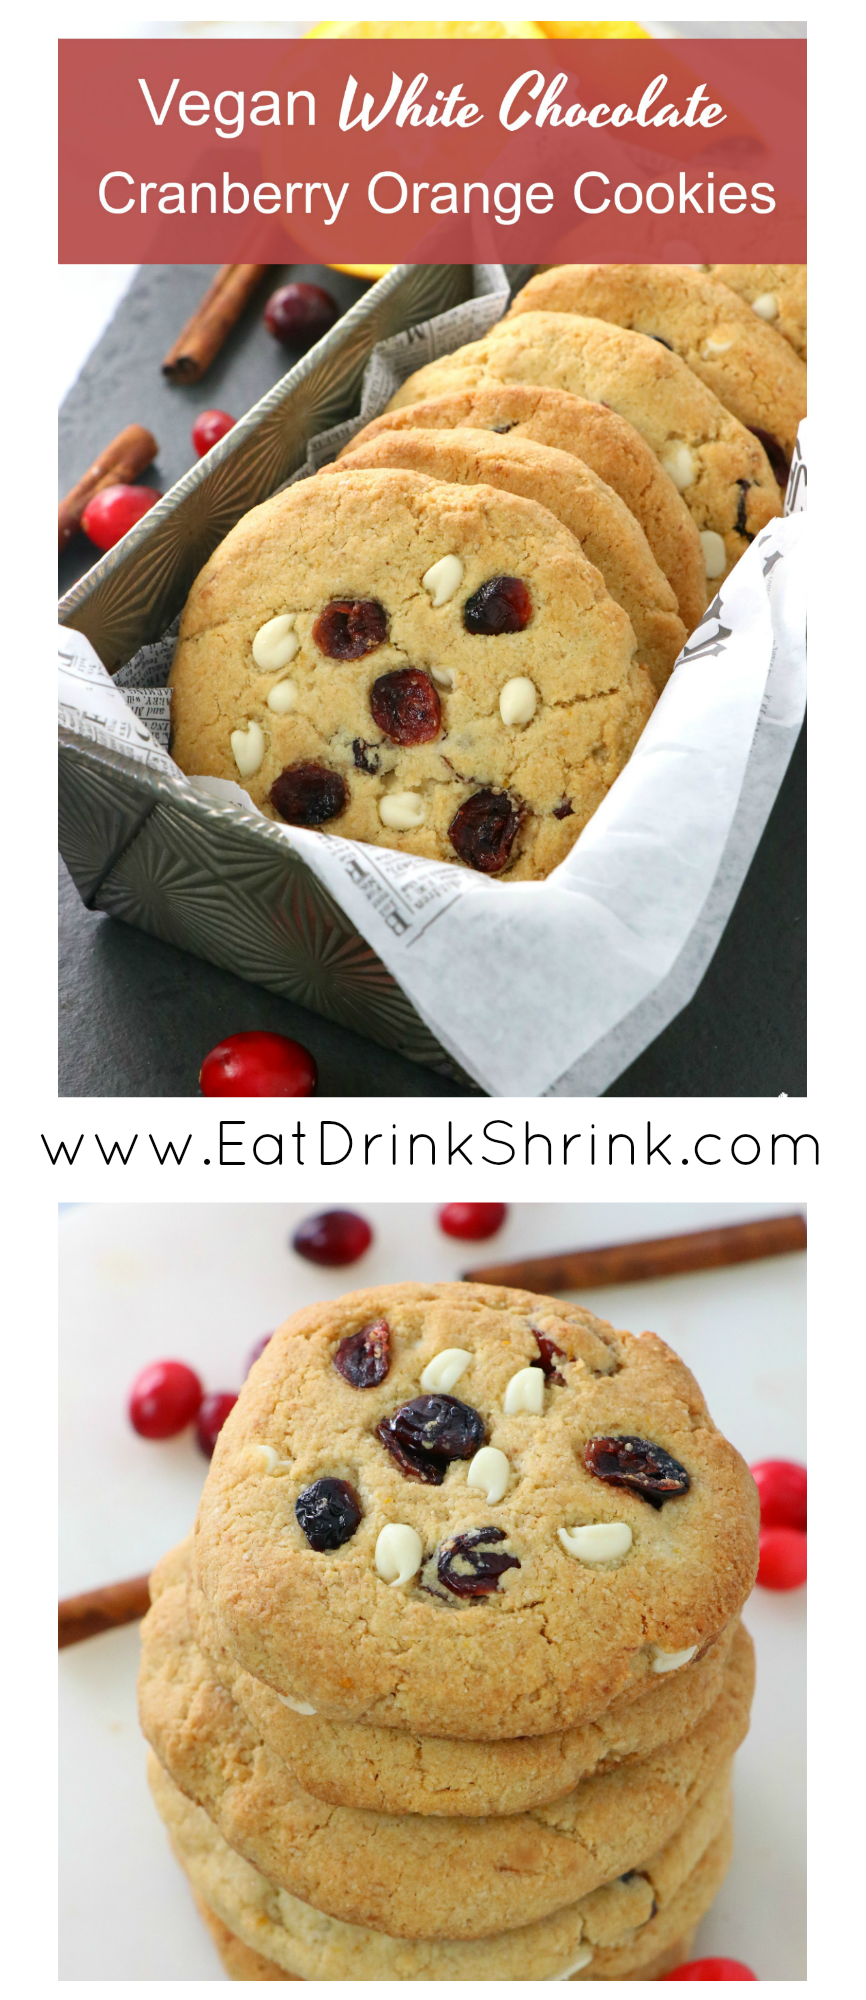 Vegan White Chocolate Cranberry Orange Almond Flour Cookies